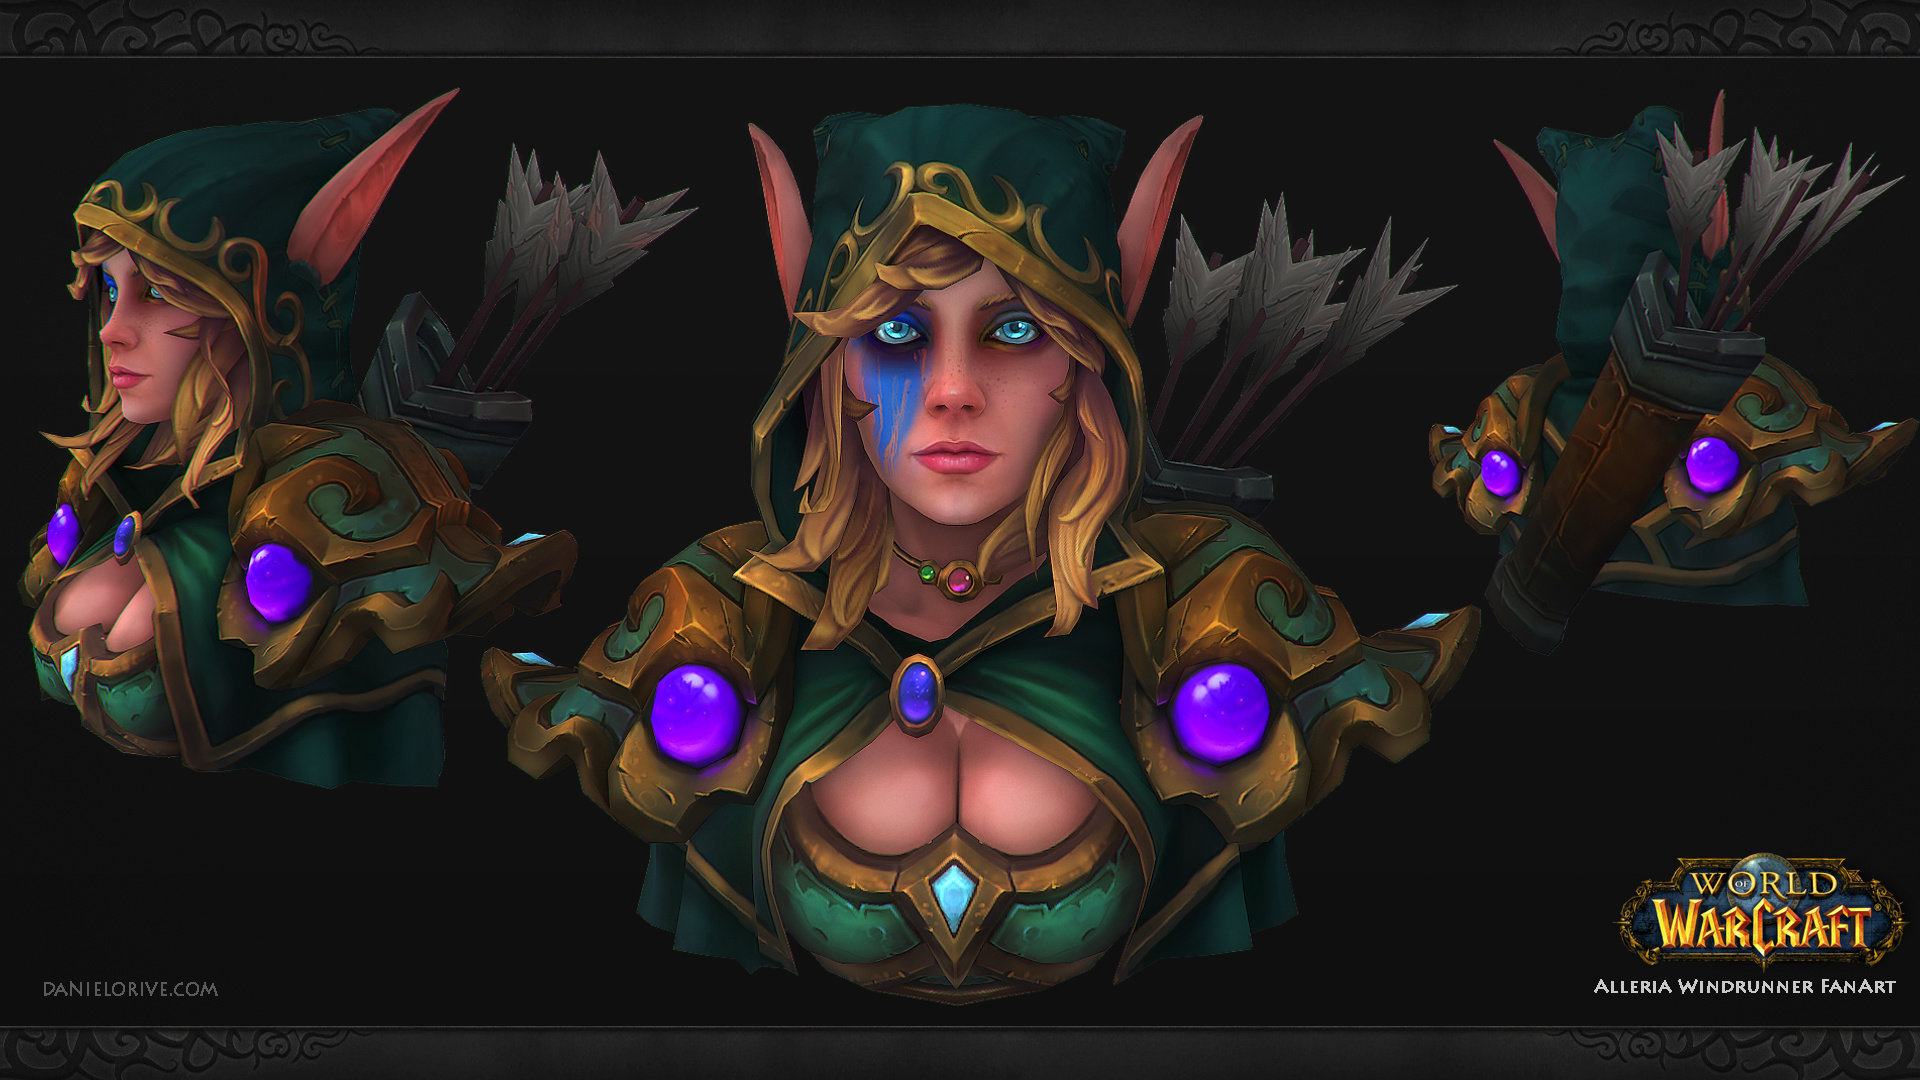 World of Warcraft Fan Art - Alleria Windrunner